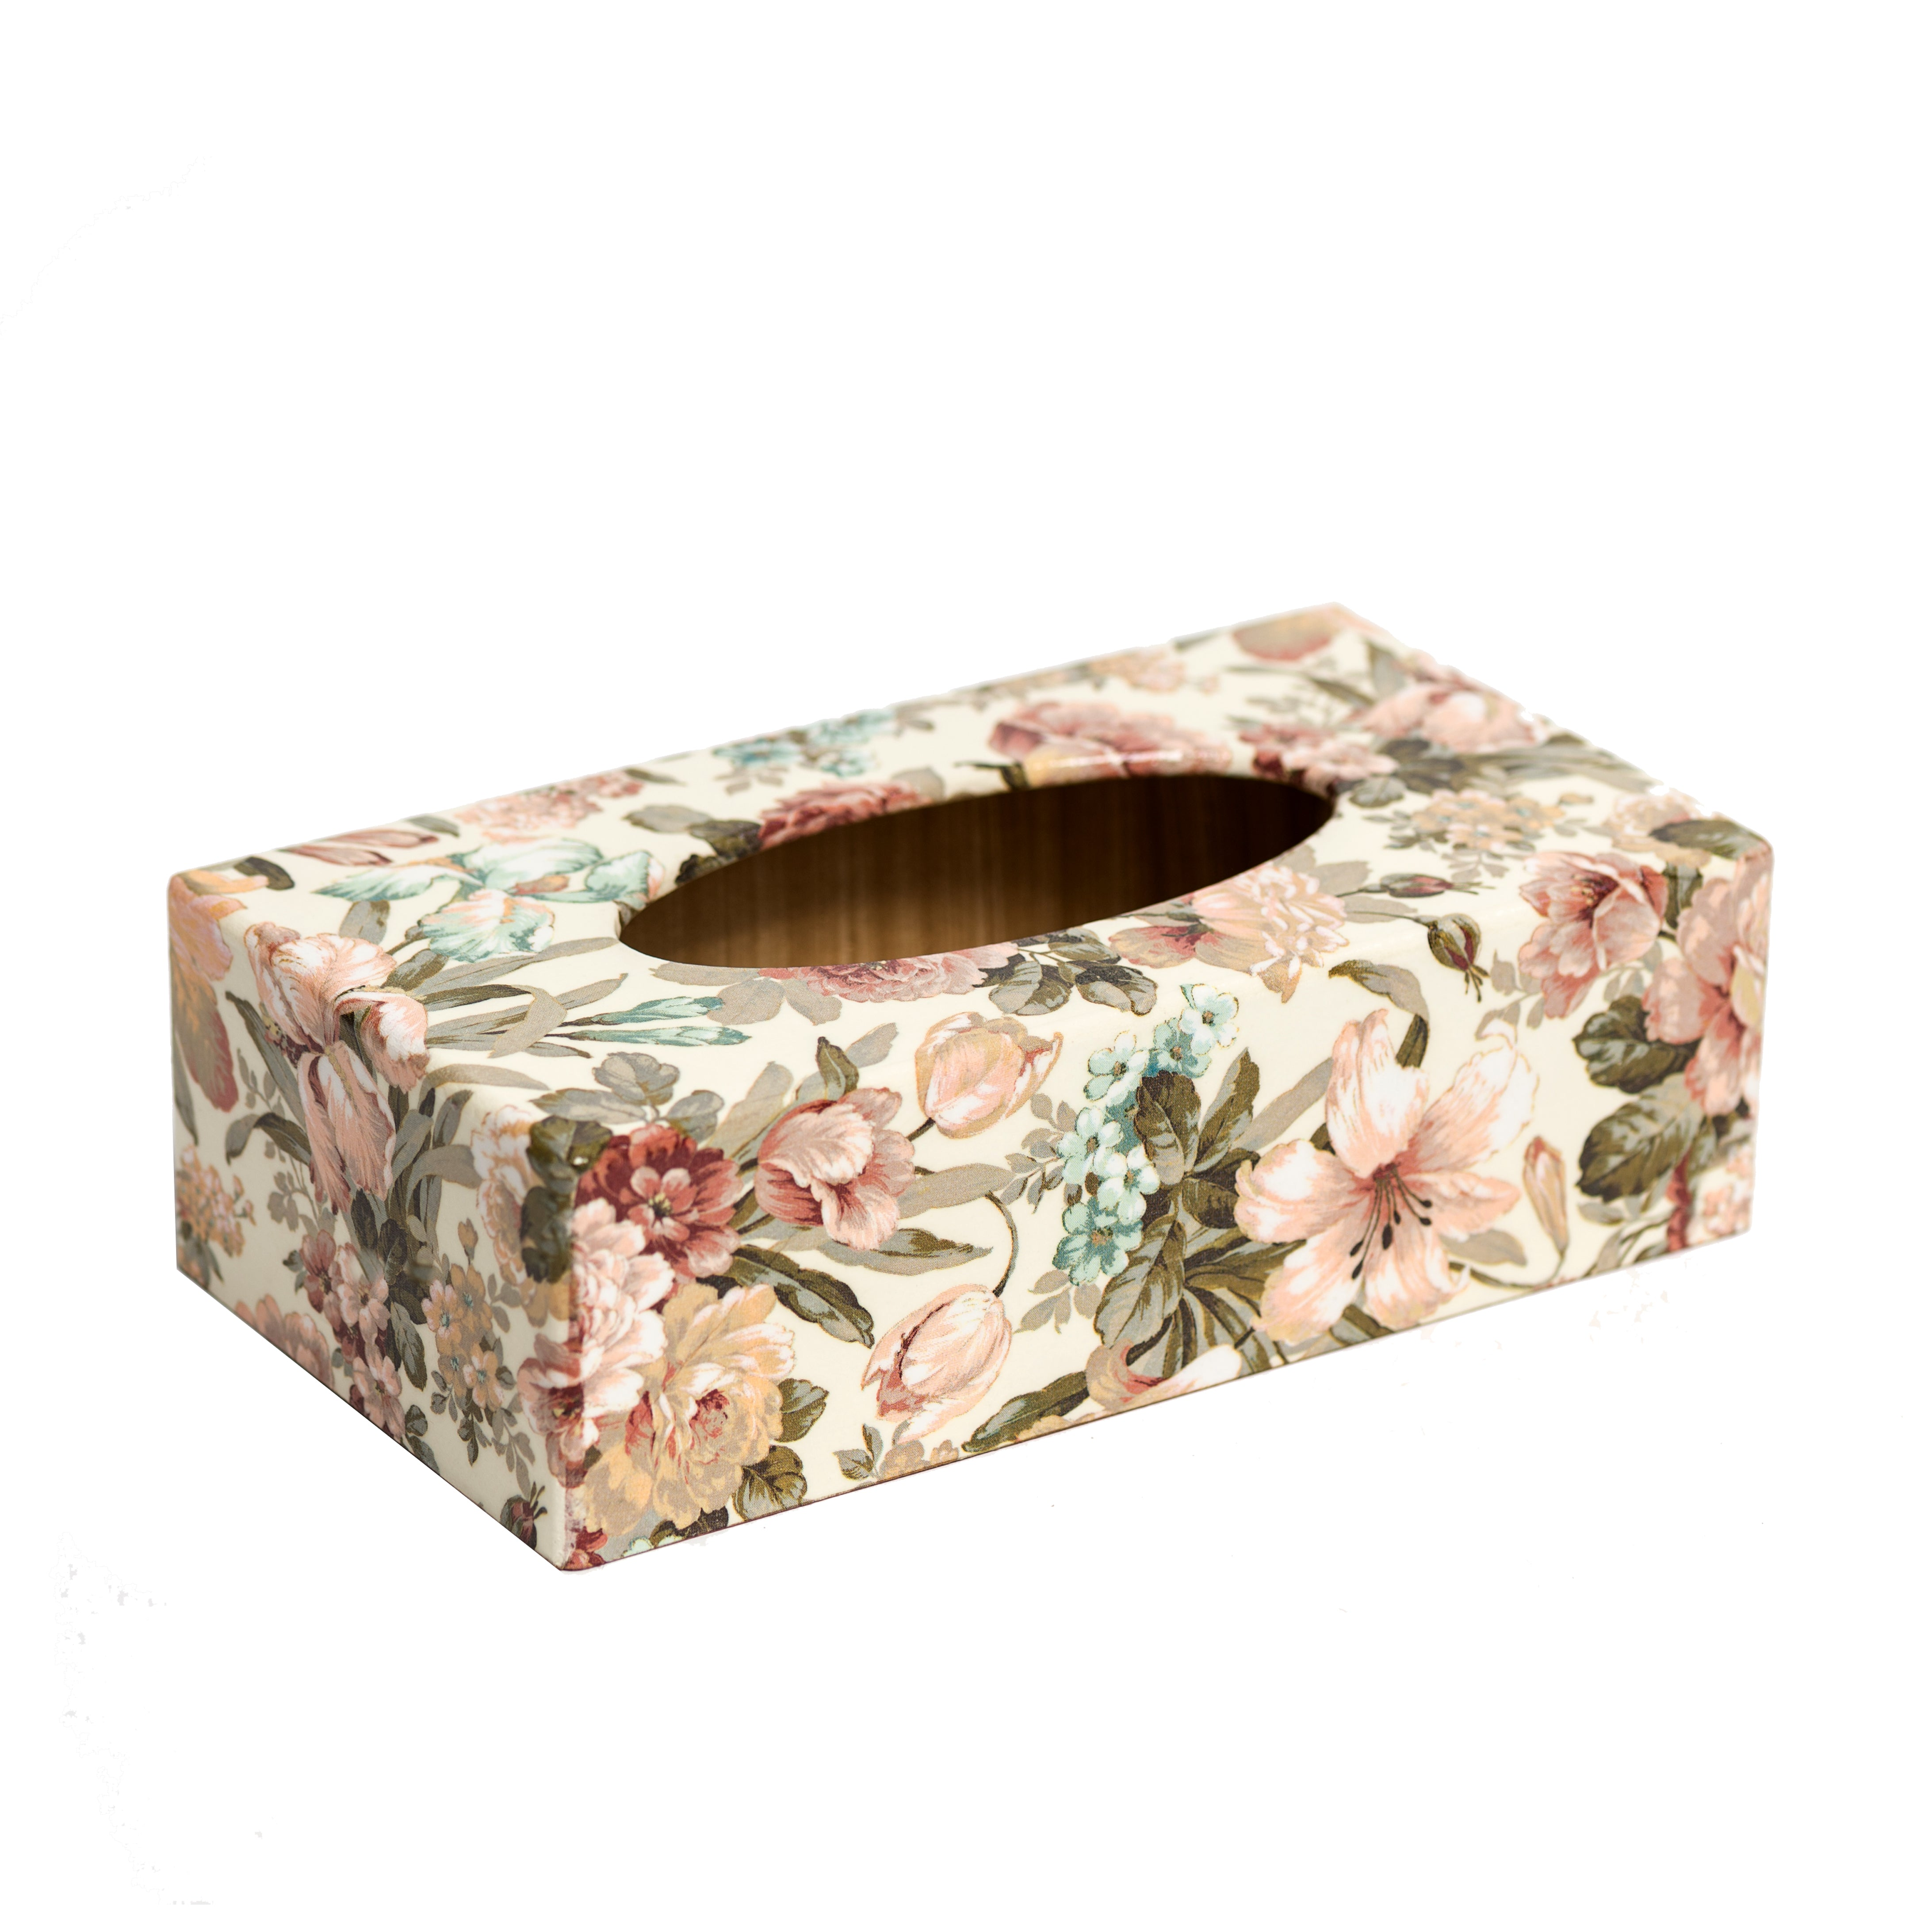 Vintage Floral Rectangular Tissue Box Cover